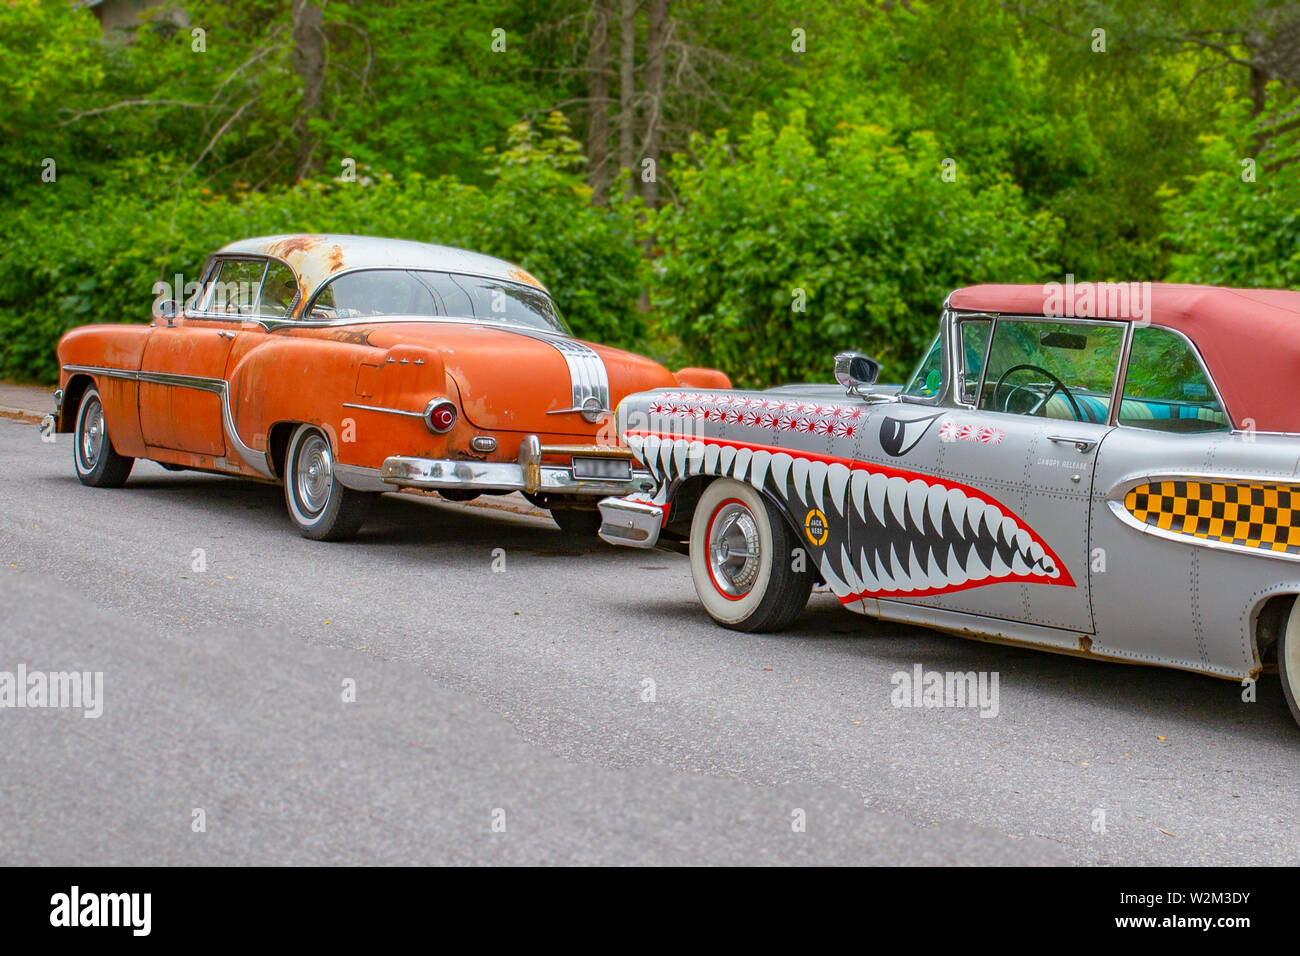 Turku, Finland - 02 July, 2018: Circa 1954 Pontiac Chieftan and circa 1958 Edsel Pacer convertible painted like a WWII era fighter plane. - Stock Image